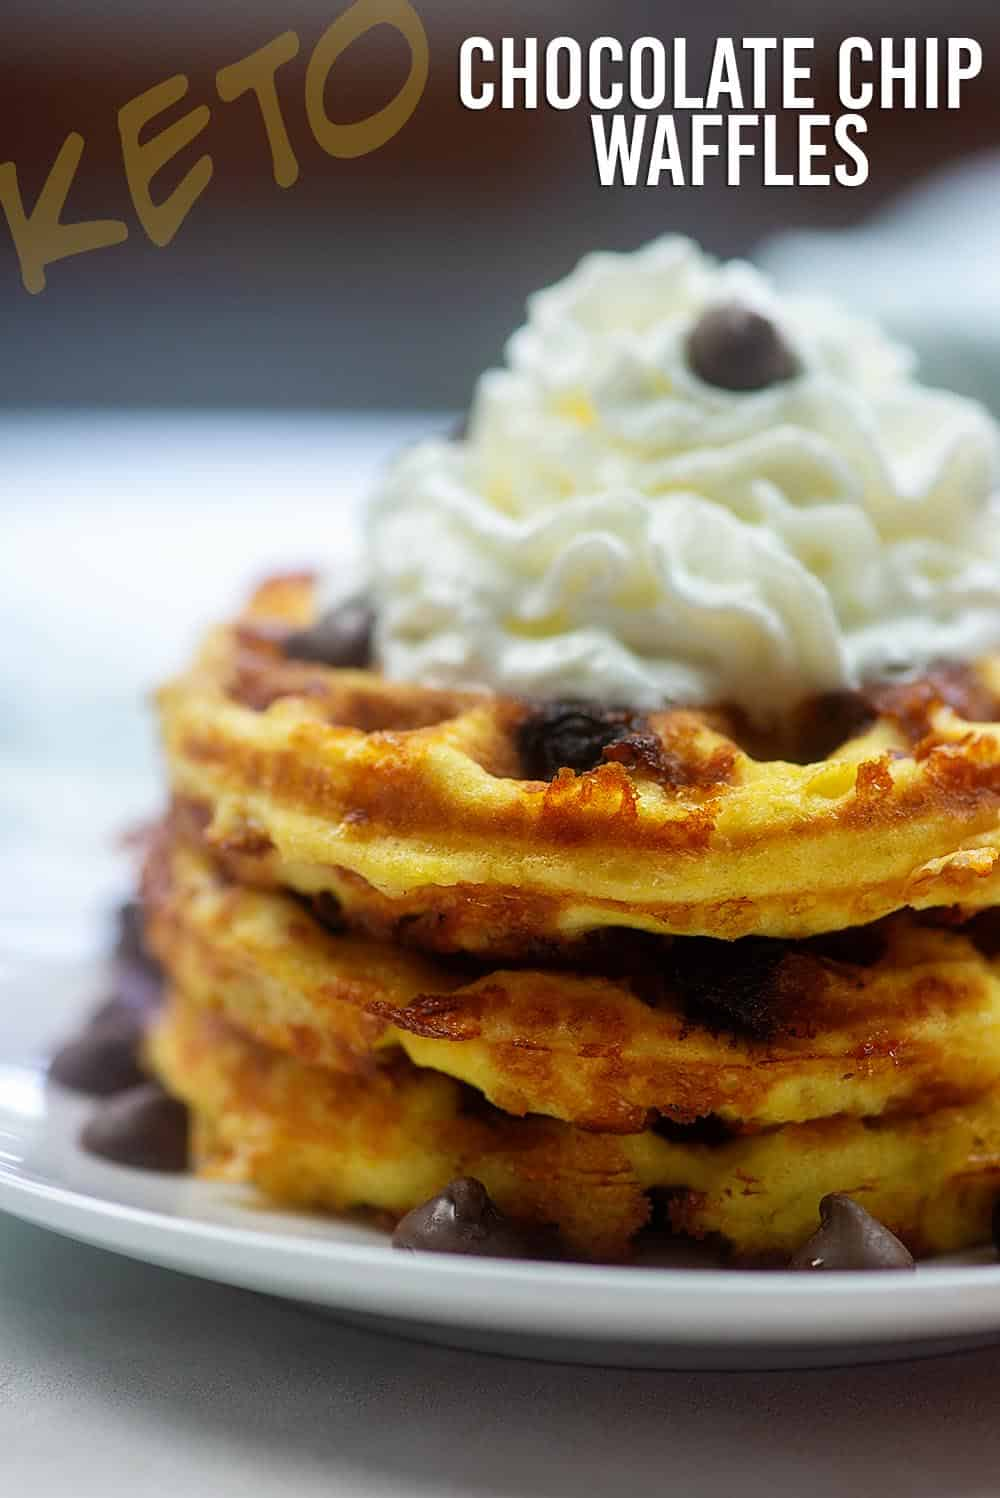 Keto Chocolate Chip Waffles! Just 3 net carbs per serving! #lowcarb #keto #chaffles #waffles